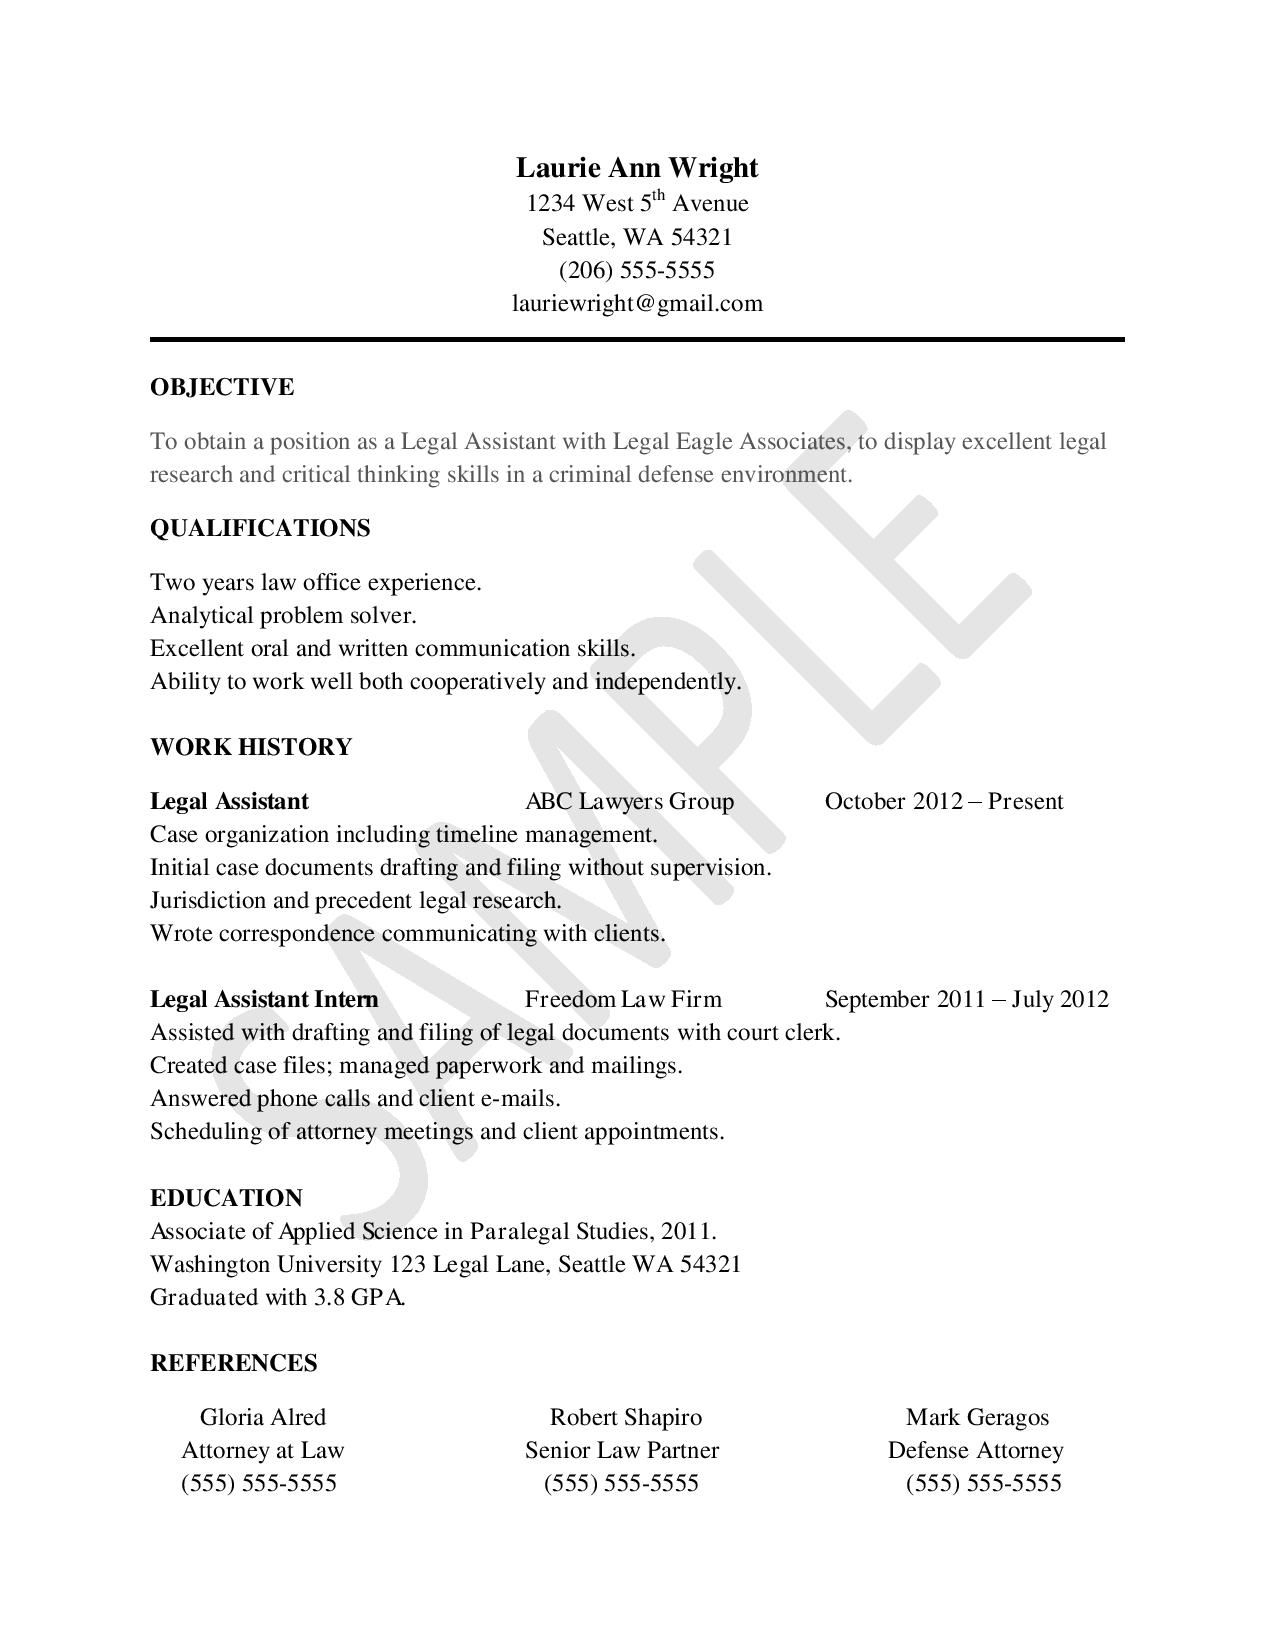 Sample Resume For Legal Assistants Legal Assistant Tips - Legal timeline template